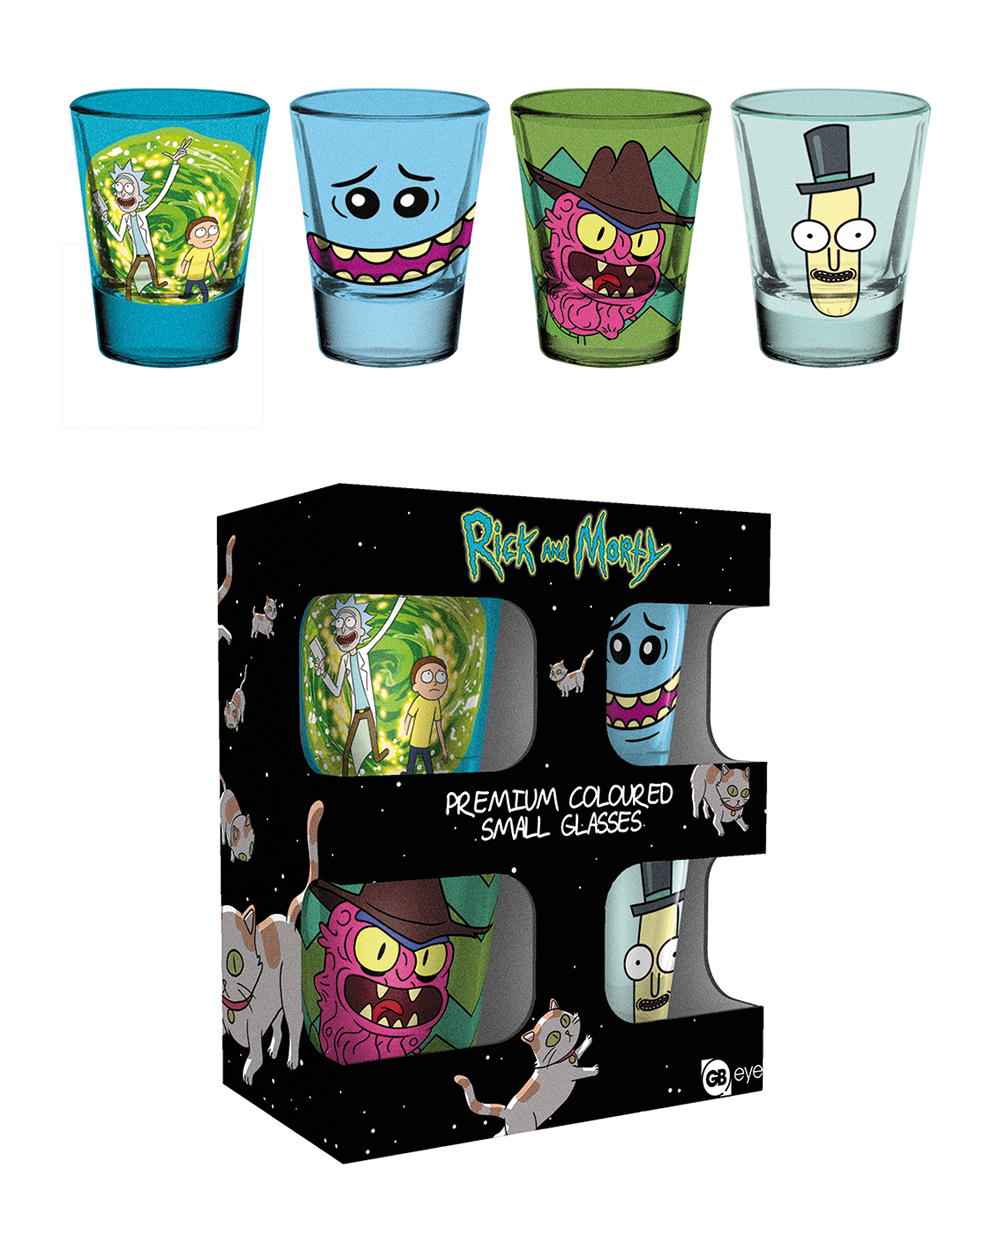 Rick and Morty coloured shot glasses